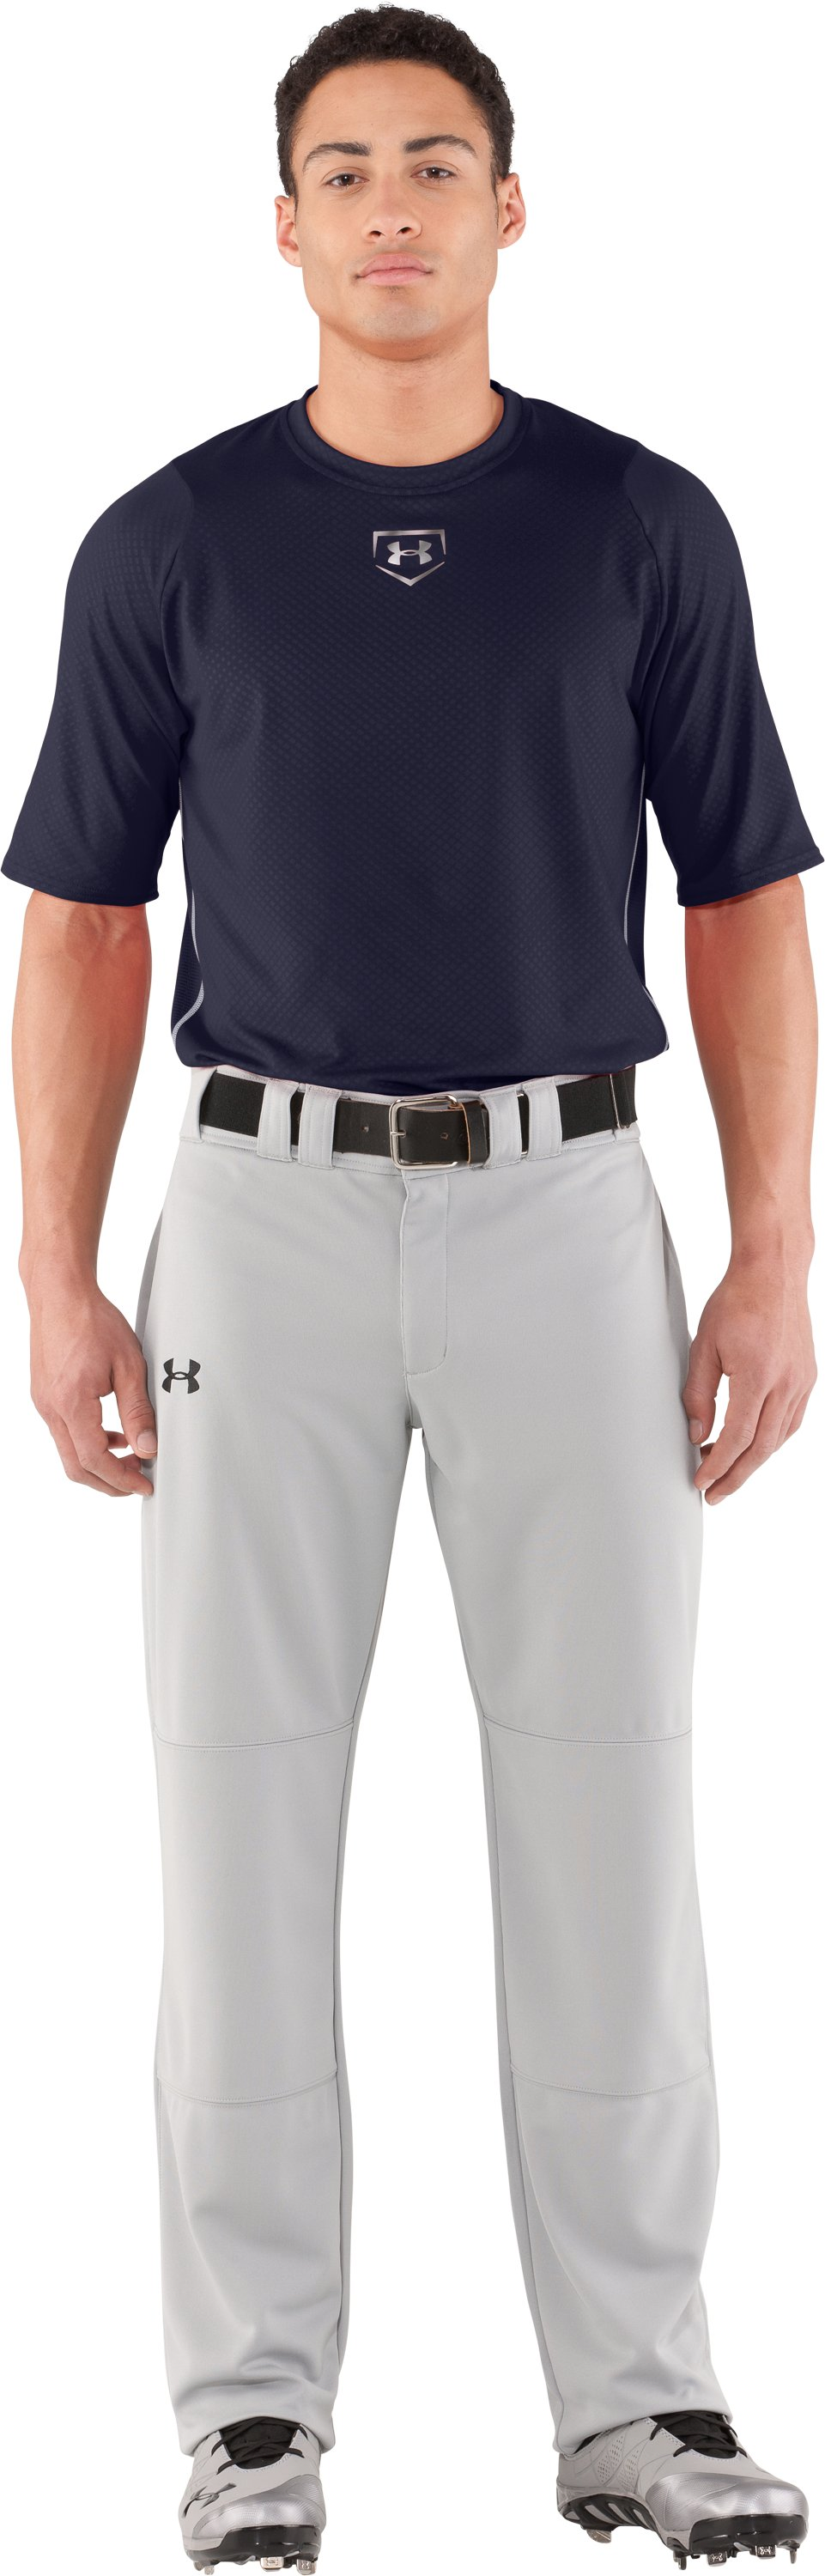 Men's UA Diamond Armour™ Baseball Short Sleeve Baselayer, Midnight Navy, Front